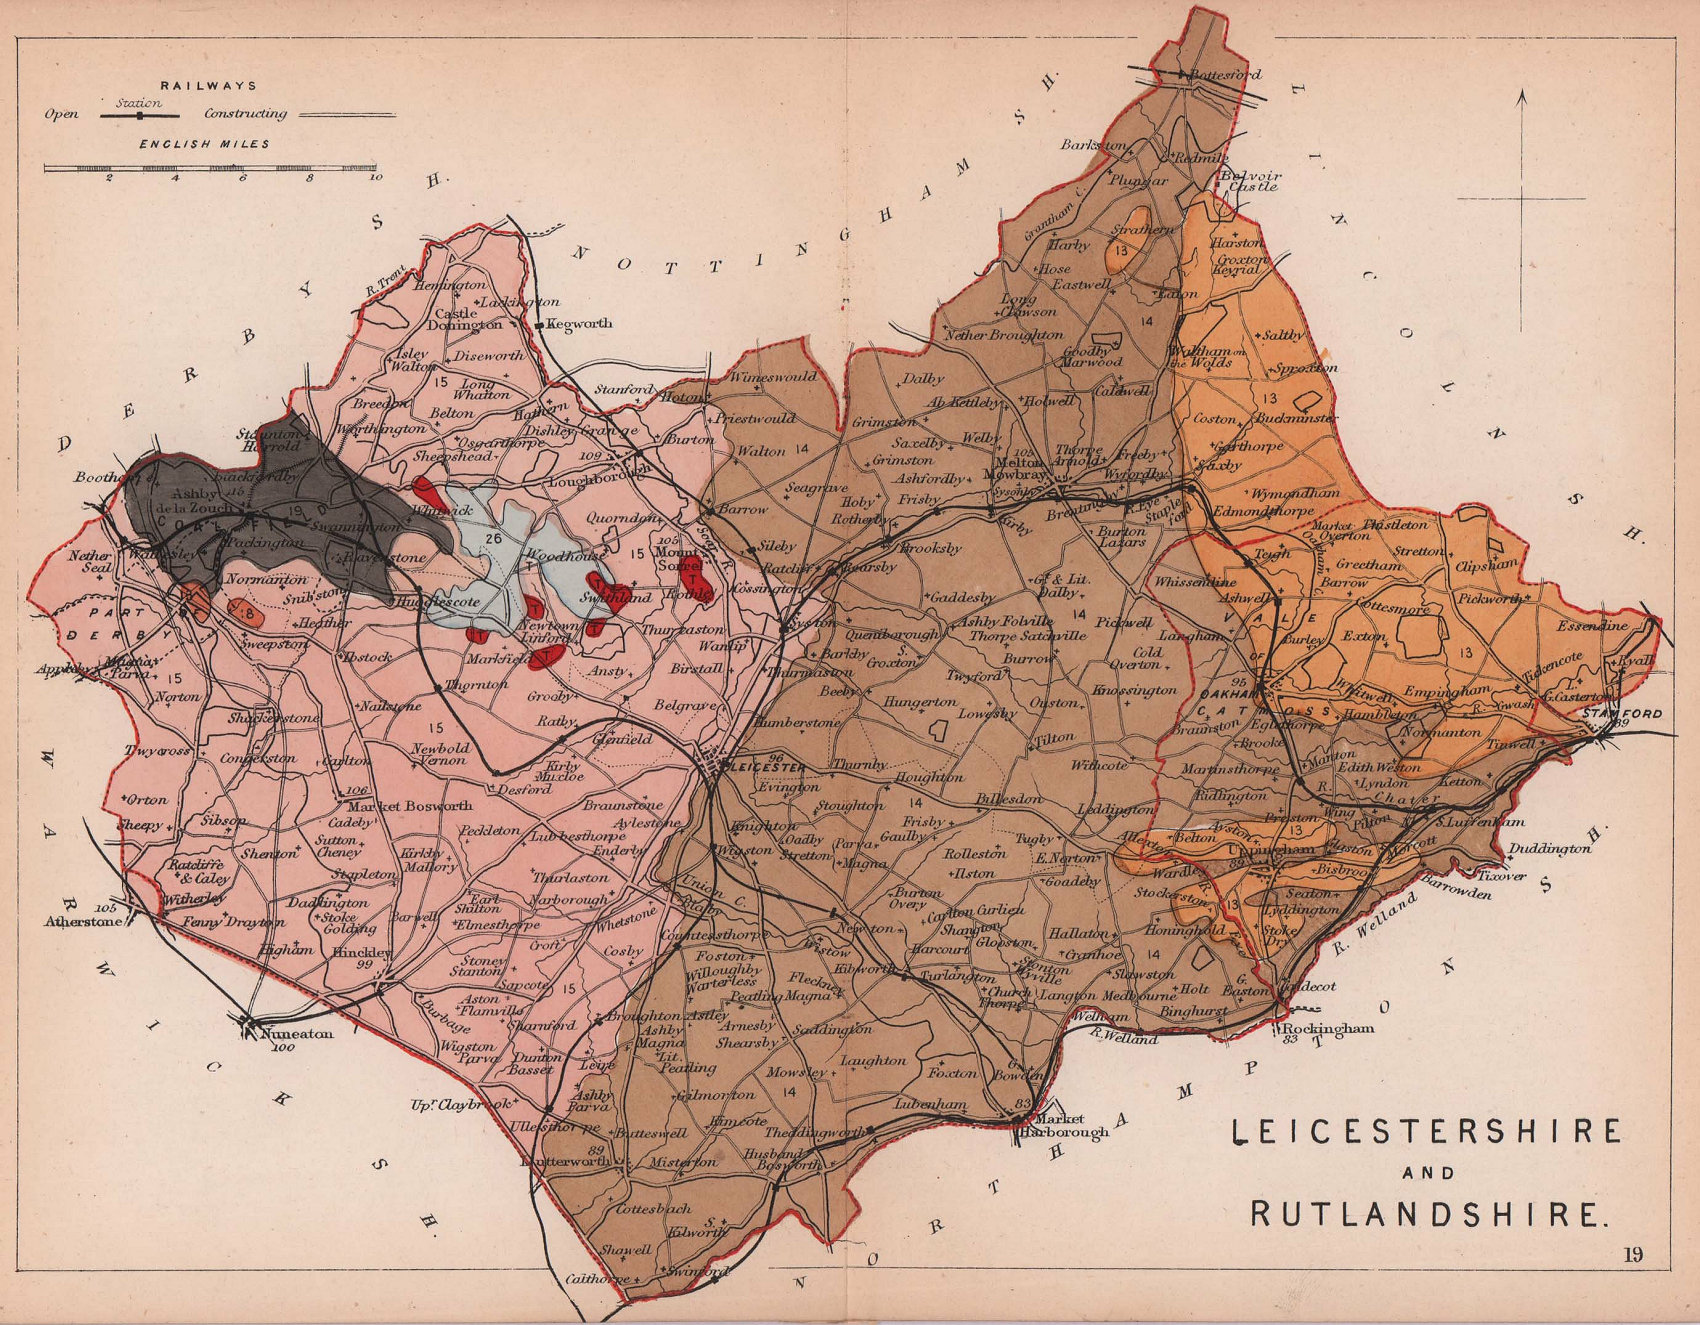 LEICESTERSHIRE & RUTLANDSHIRE antique geological county map. James Reynolds 1864